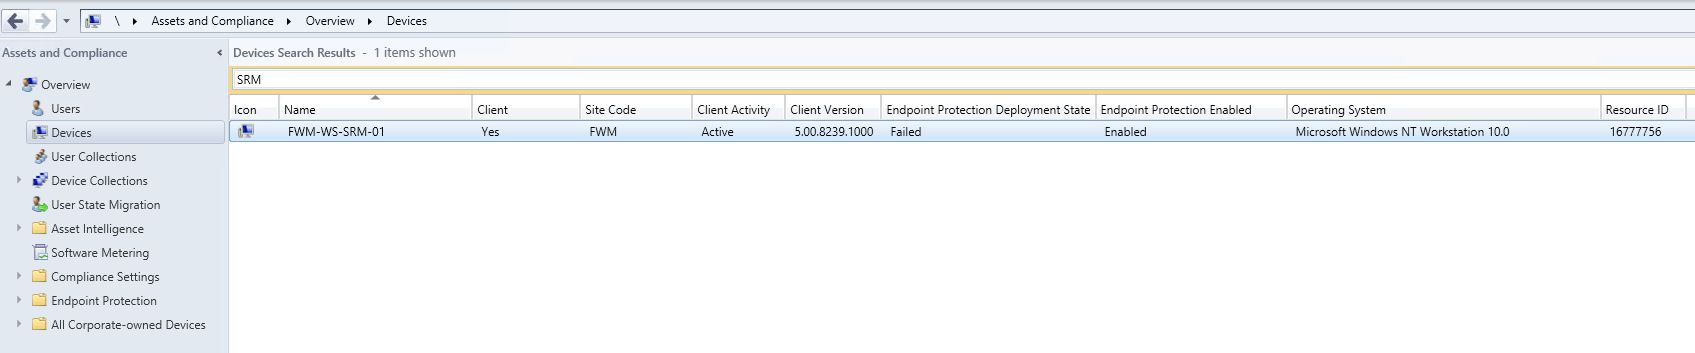 SCCM2012 System Center Endpoint Protection installation does